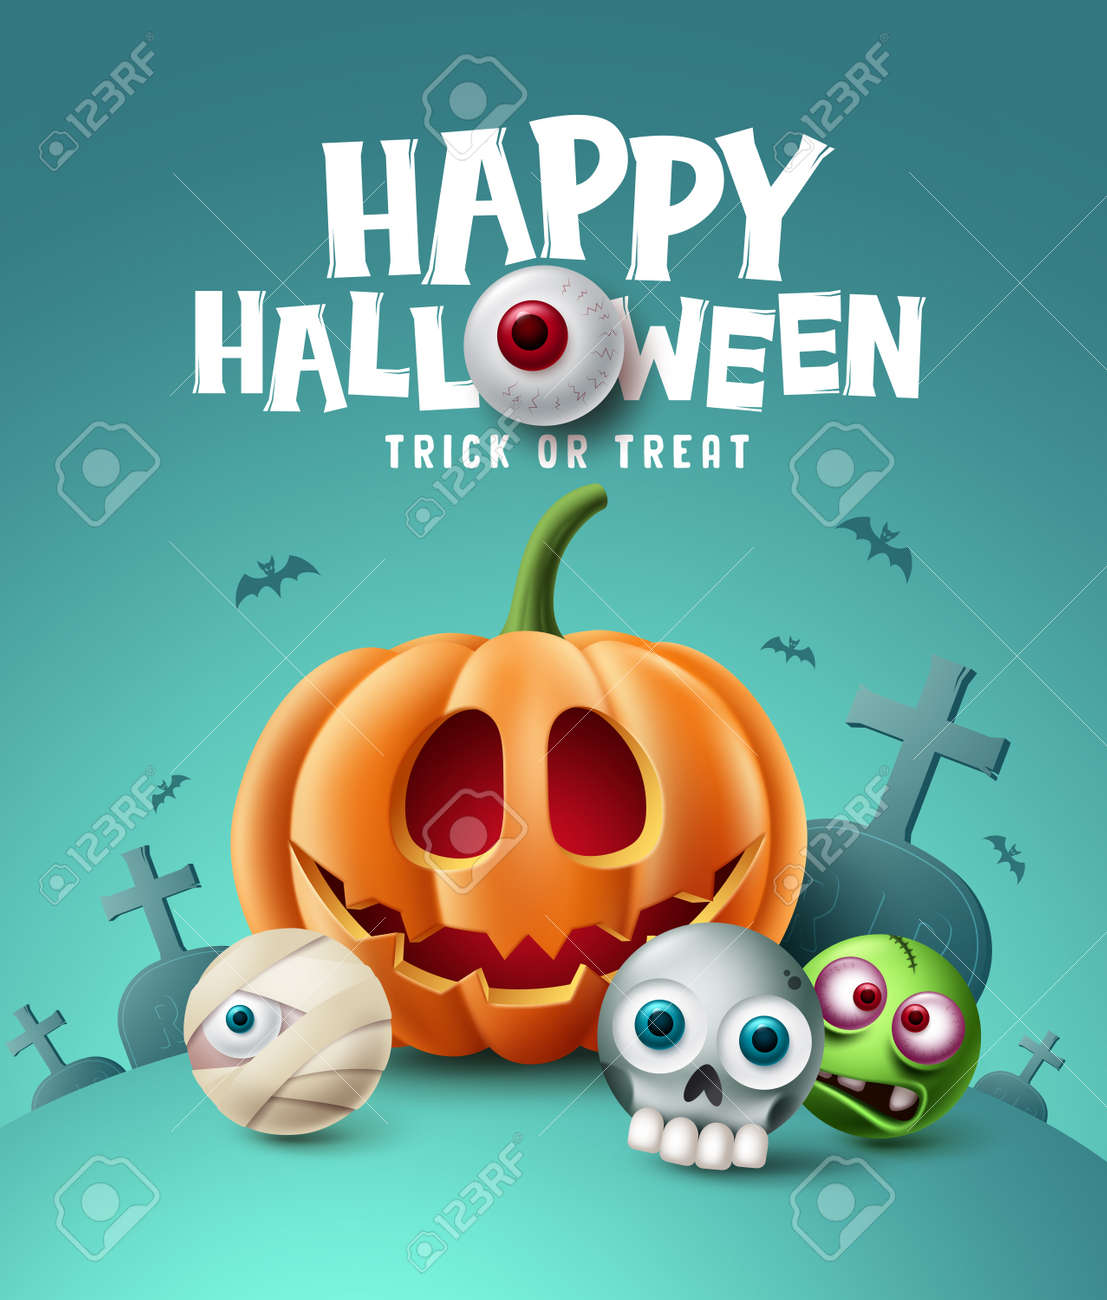 Happy halloween background design. Halloween trick or treat text with eyeball element and scary cute character in grave yard cemetery background. Vector illustration - 173033780